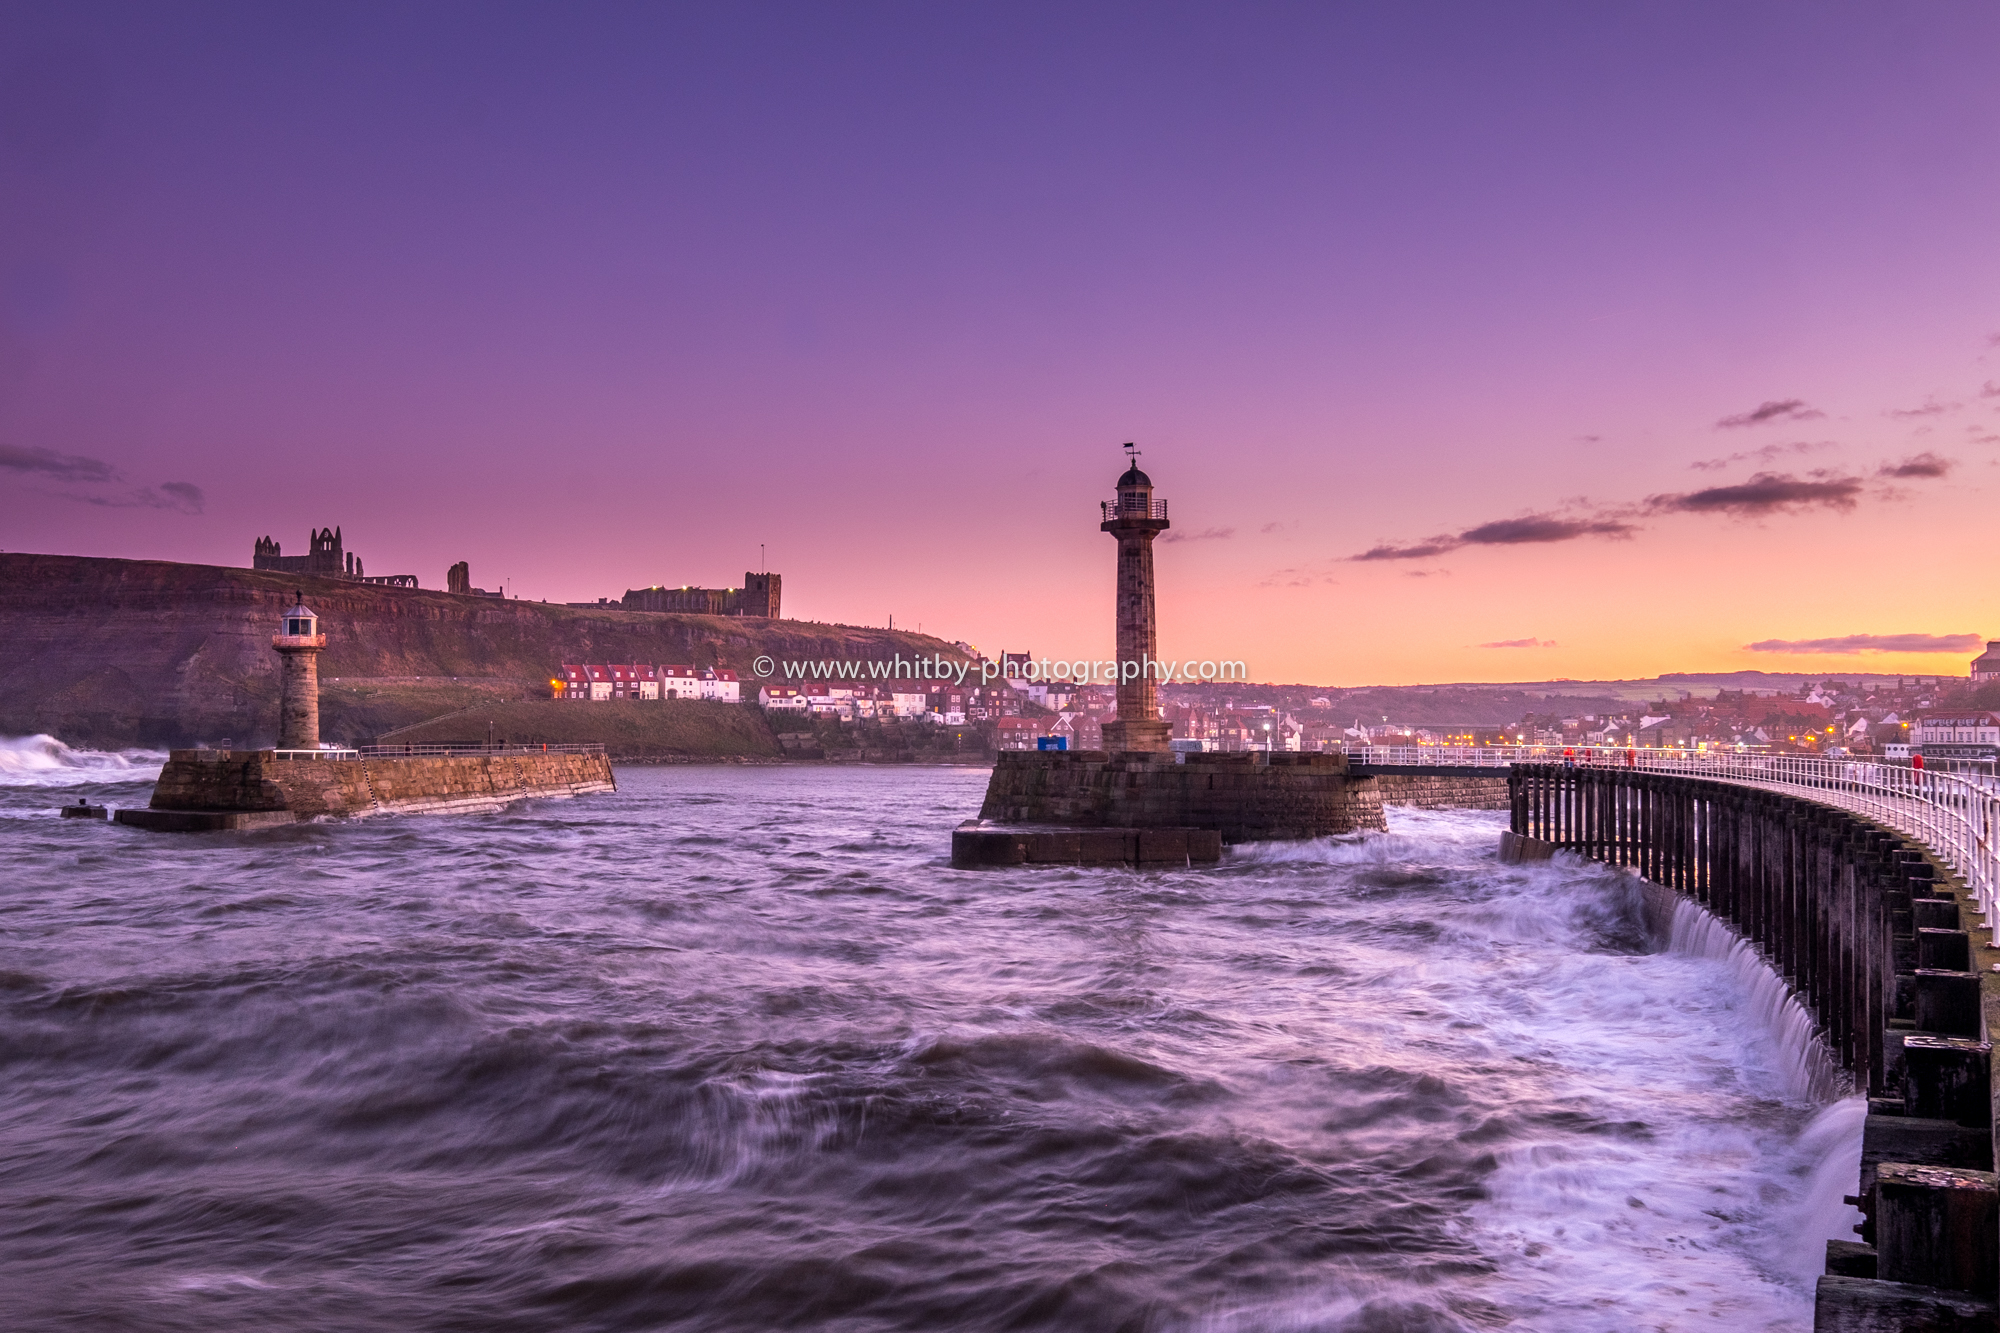 February Weather At Whitby - Long Exposures On A Rough Sea ...